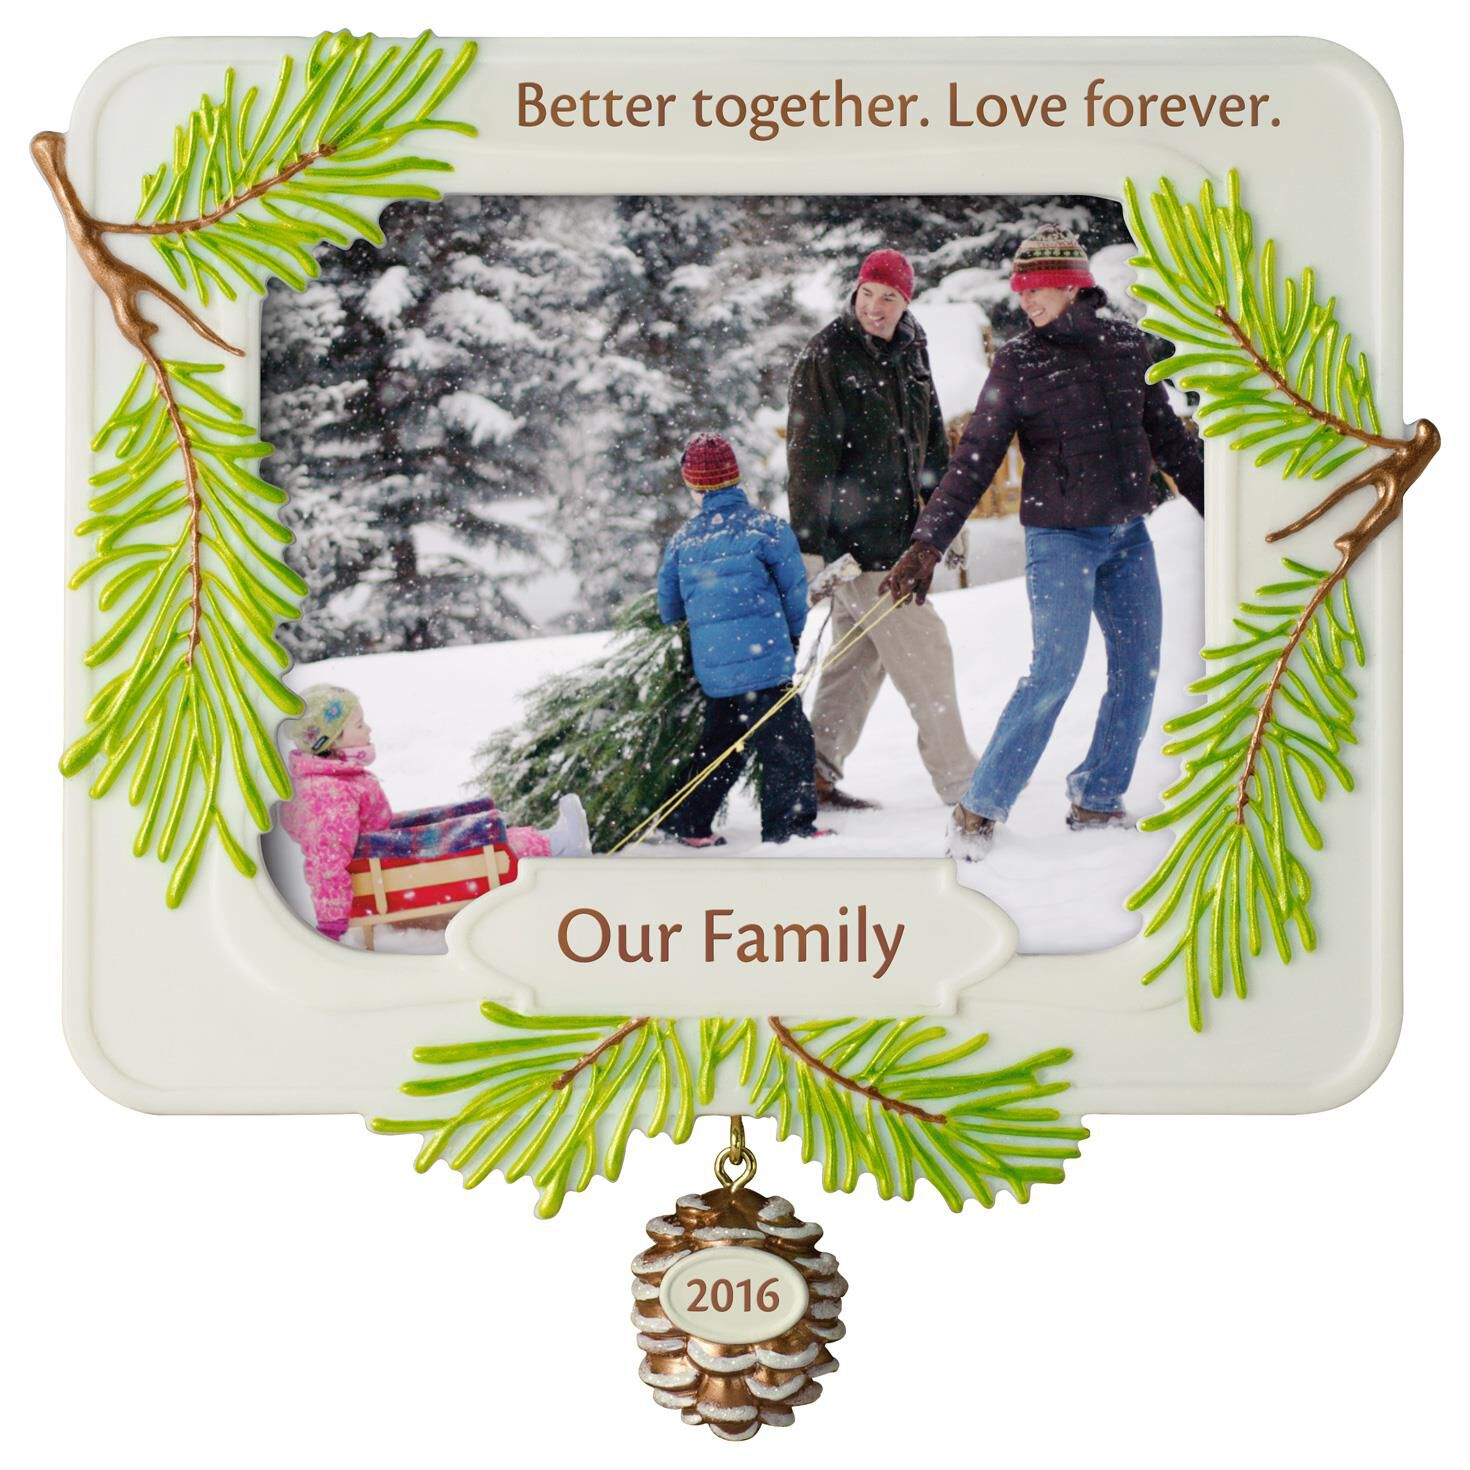 Better together family photo holder ornament keepsake ornaments hallmark